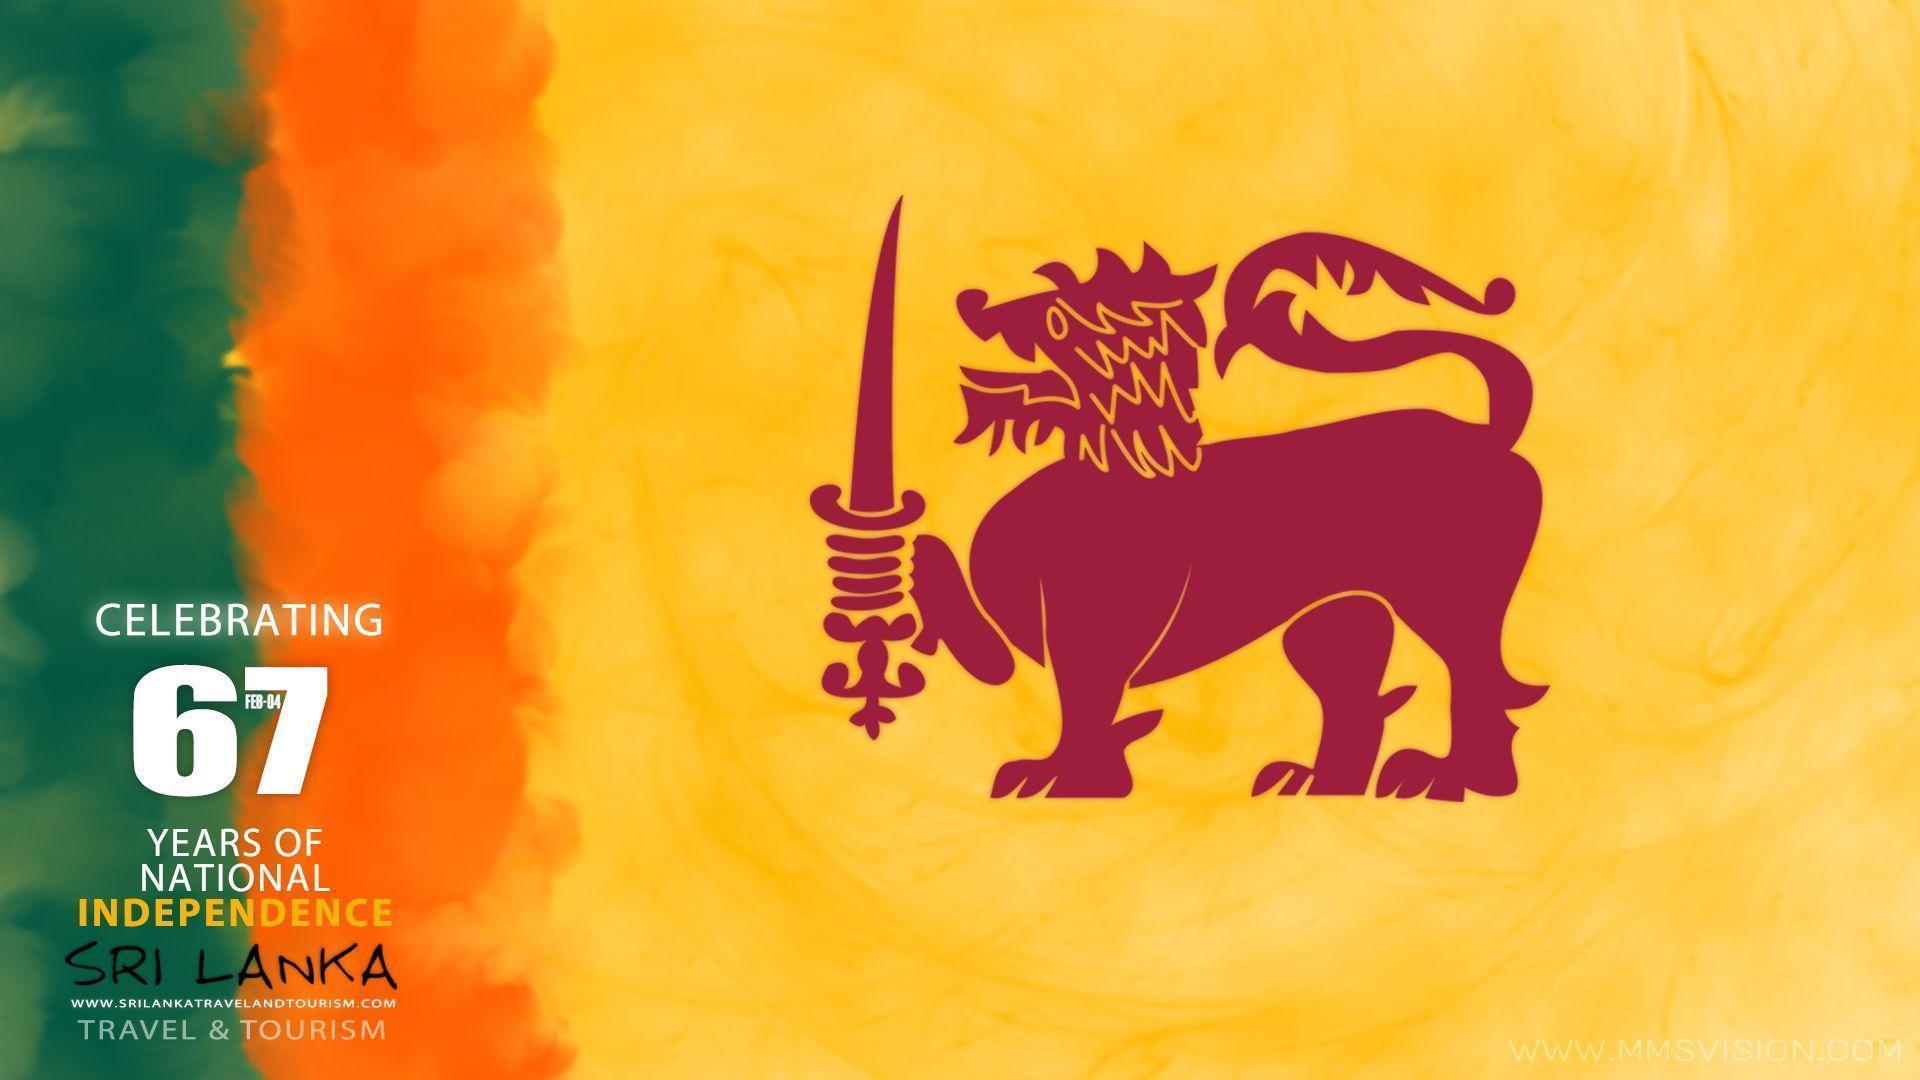 Sri Lanka wallpaper HD background download Facebook Covers ...